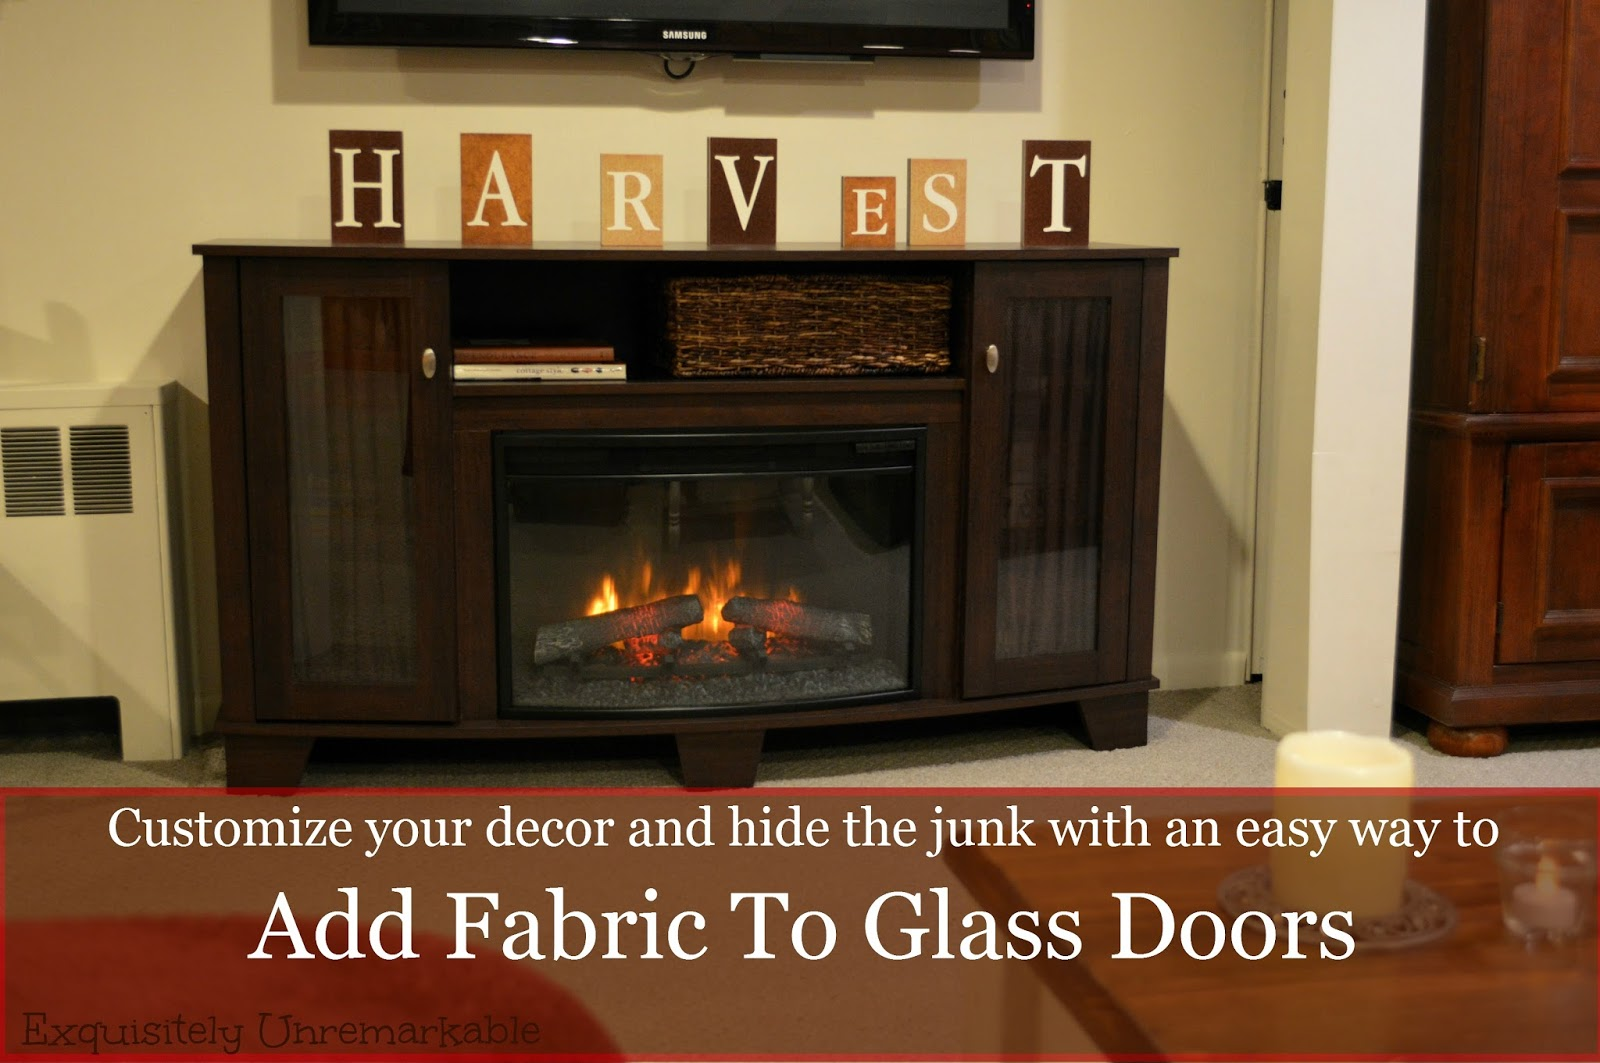 How To Add Fabric To Glass Doors